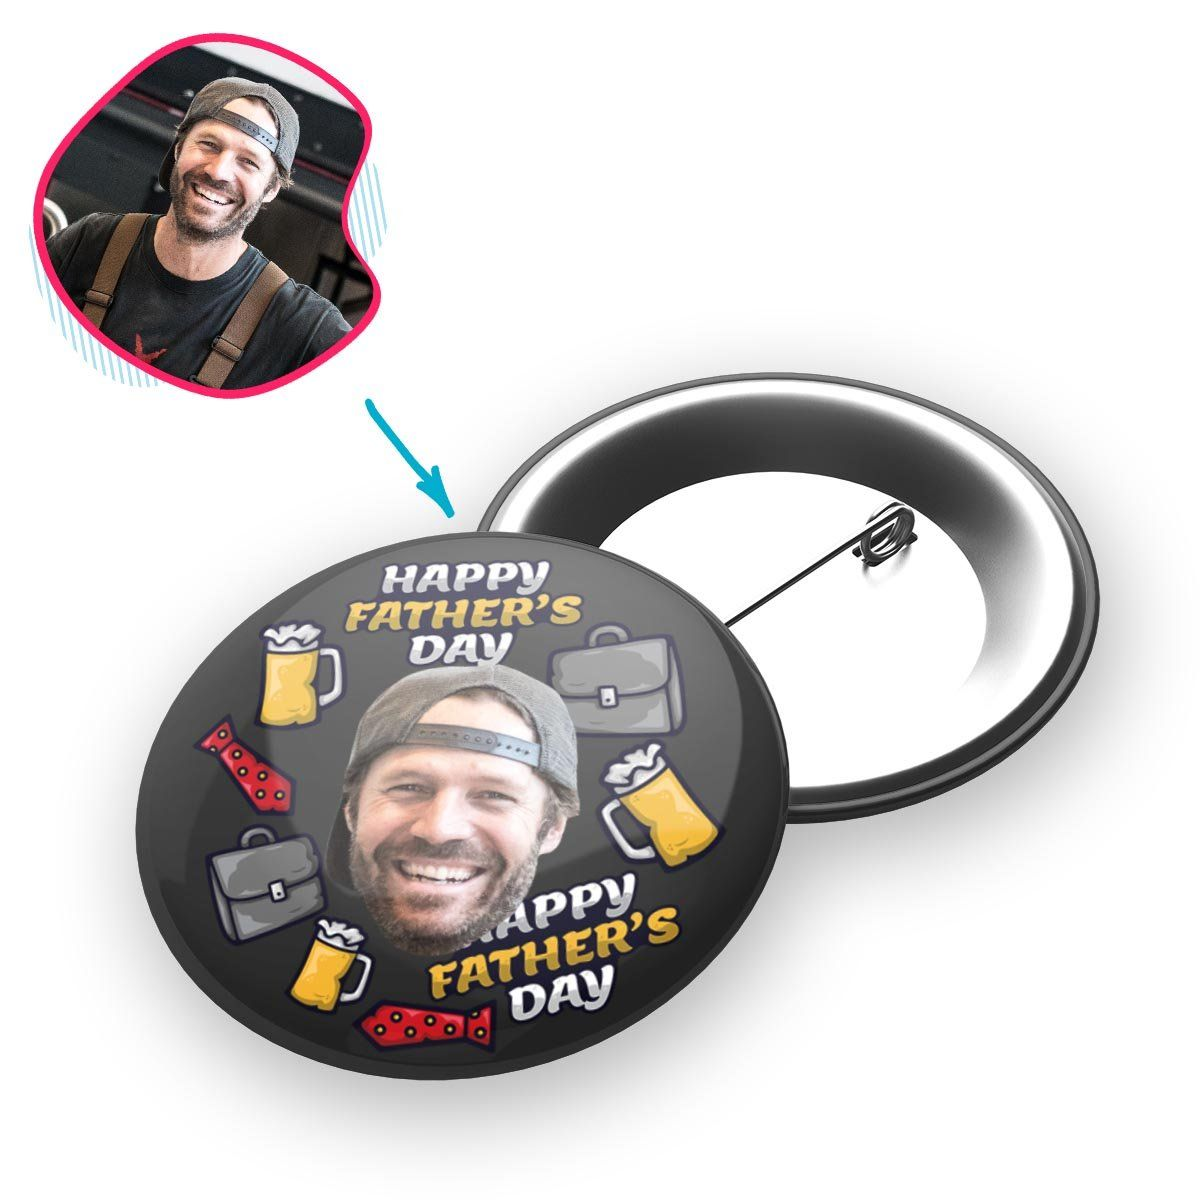 Dark Fathers Day personalized pin with photo of face printed on it